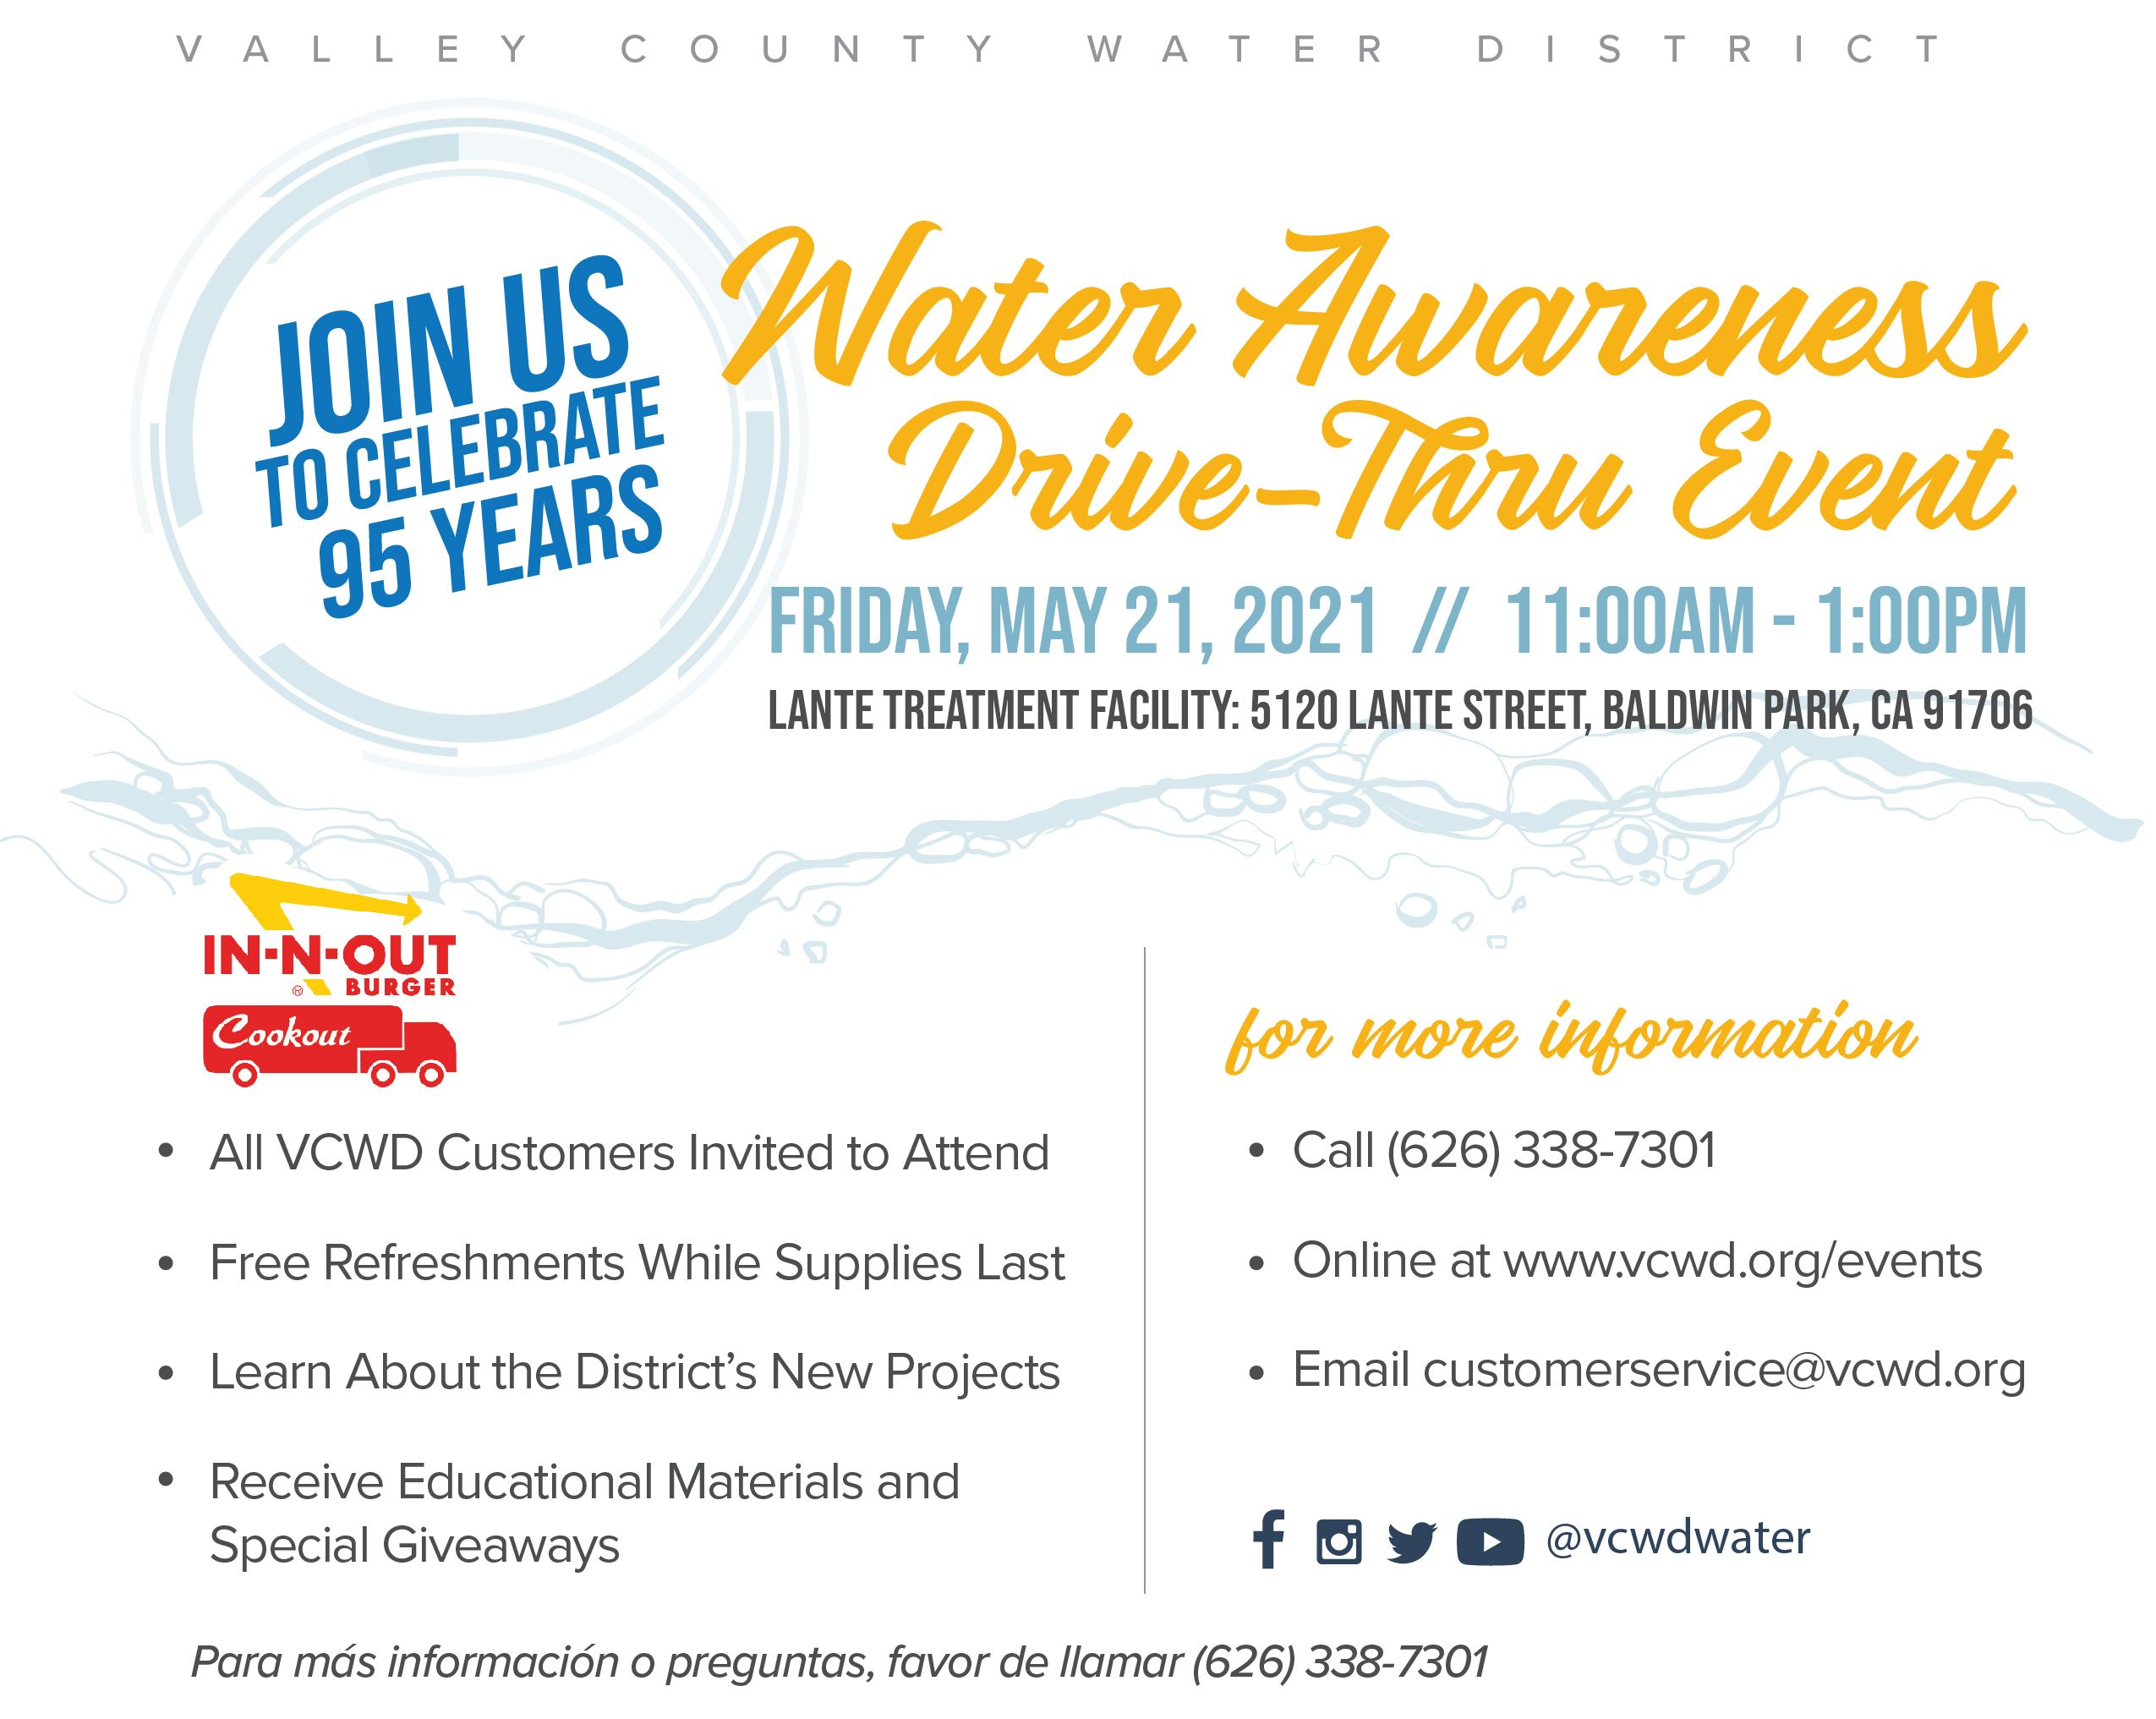 Water Awareness Event Information